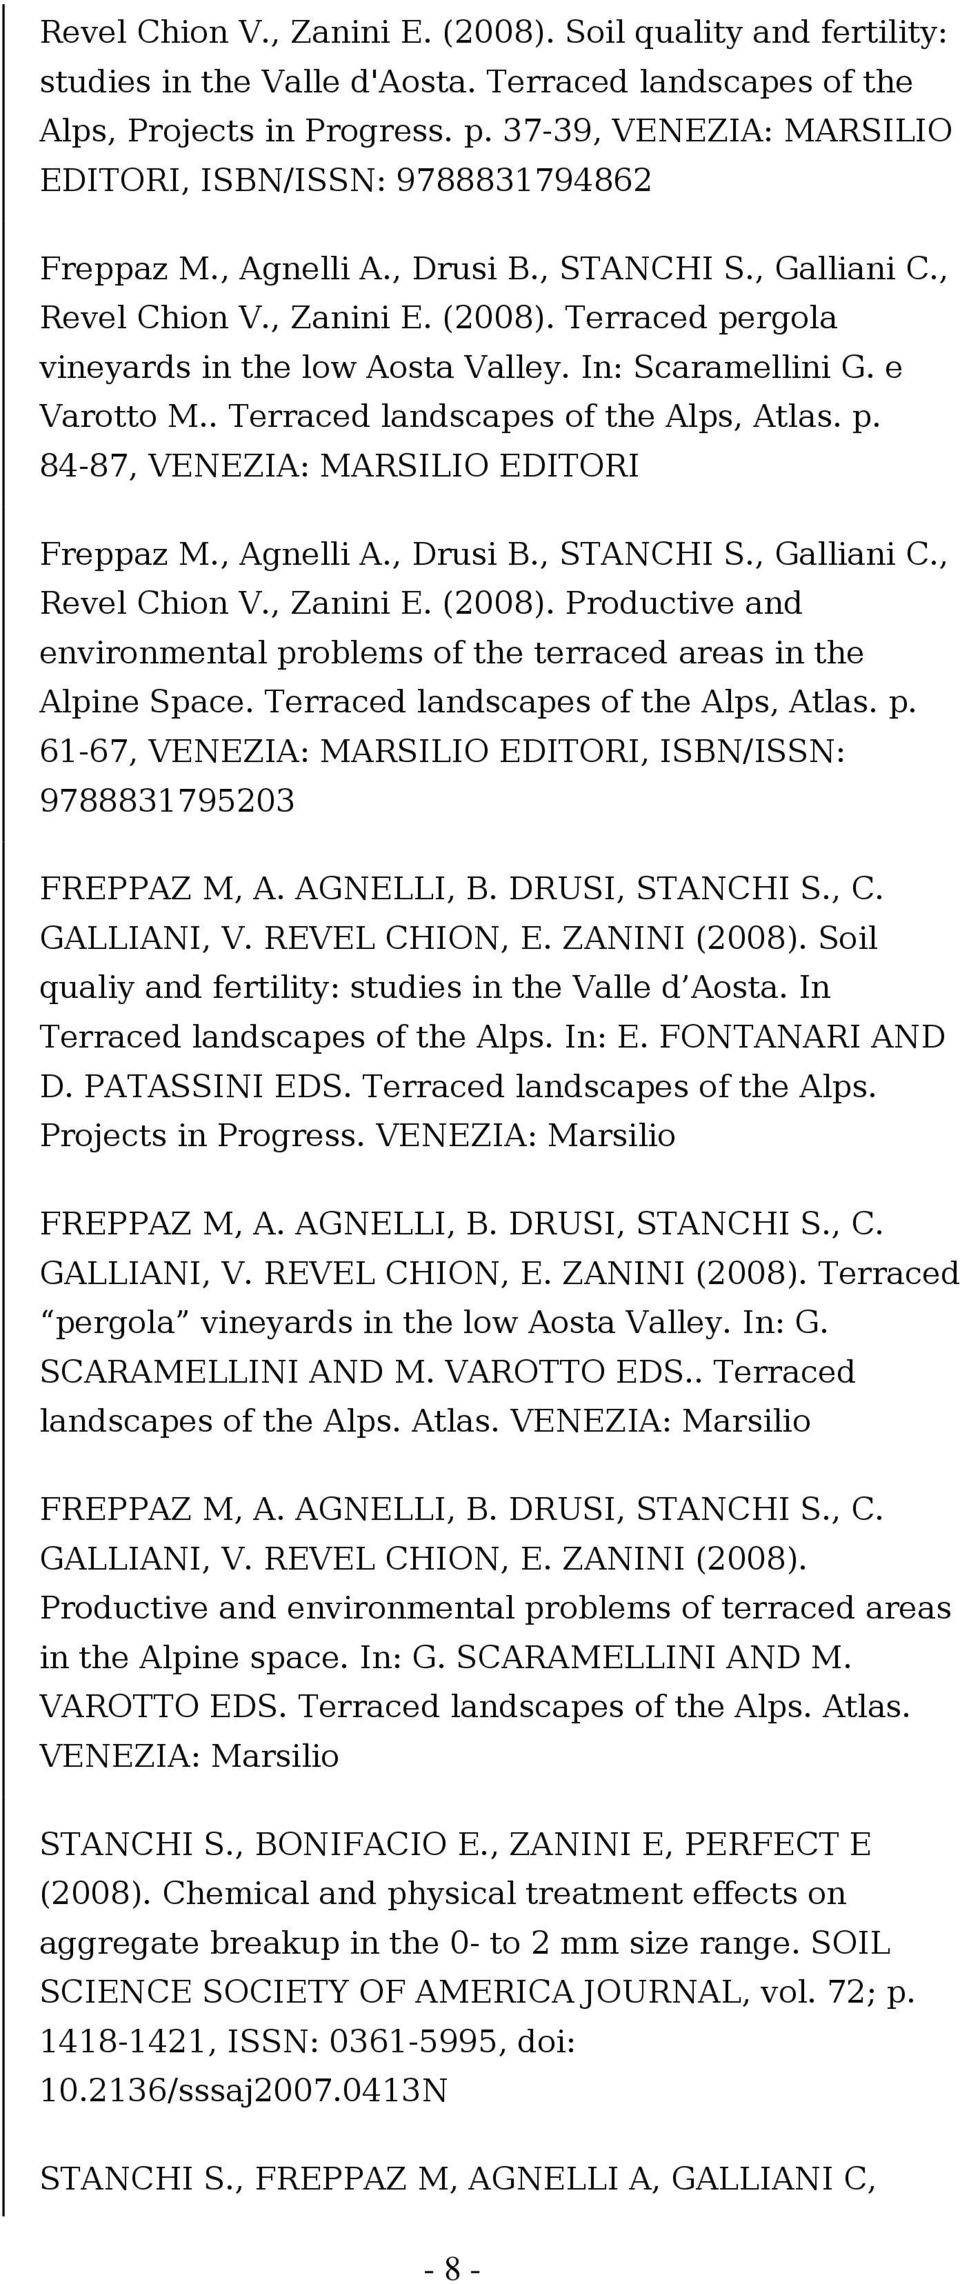 Terraced pergola vineyards in the low Aosta Valley. In: Scaramellini G. e Varotto M.. Terraced landscapes of the Alps, Atlas. p. 84-87, VENEZIA: MARSILIO EDITORI Freppaz M., Agnelli A., Drusi B.